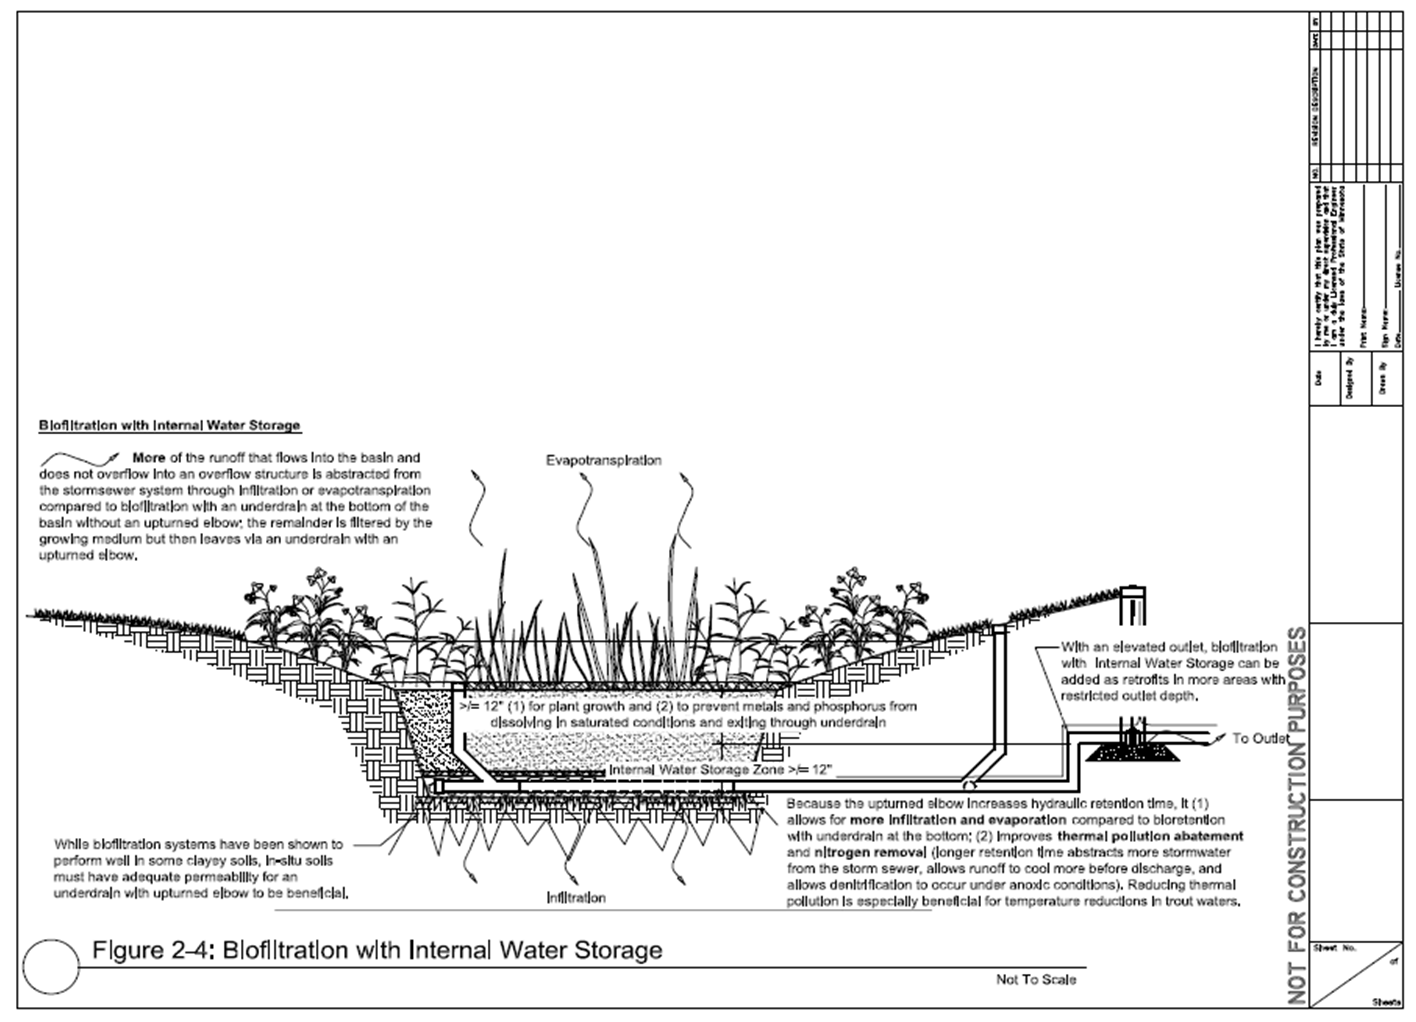 File:Biofiltration with internal water storage.png